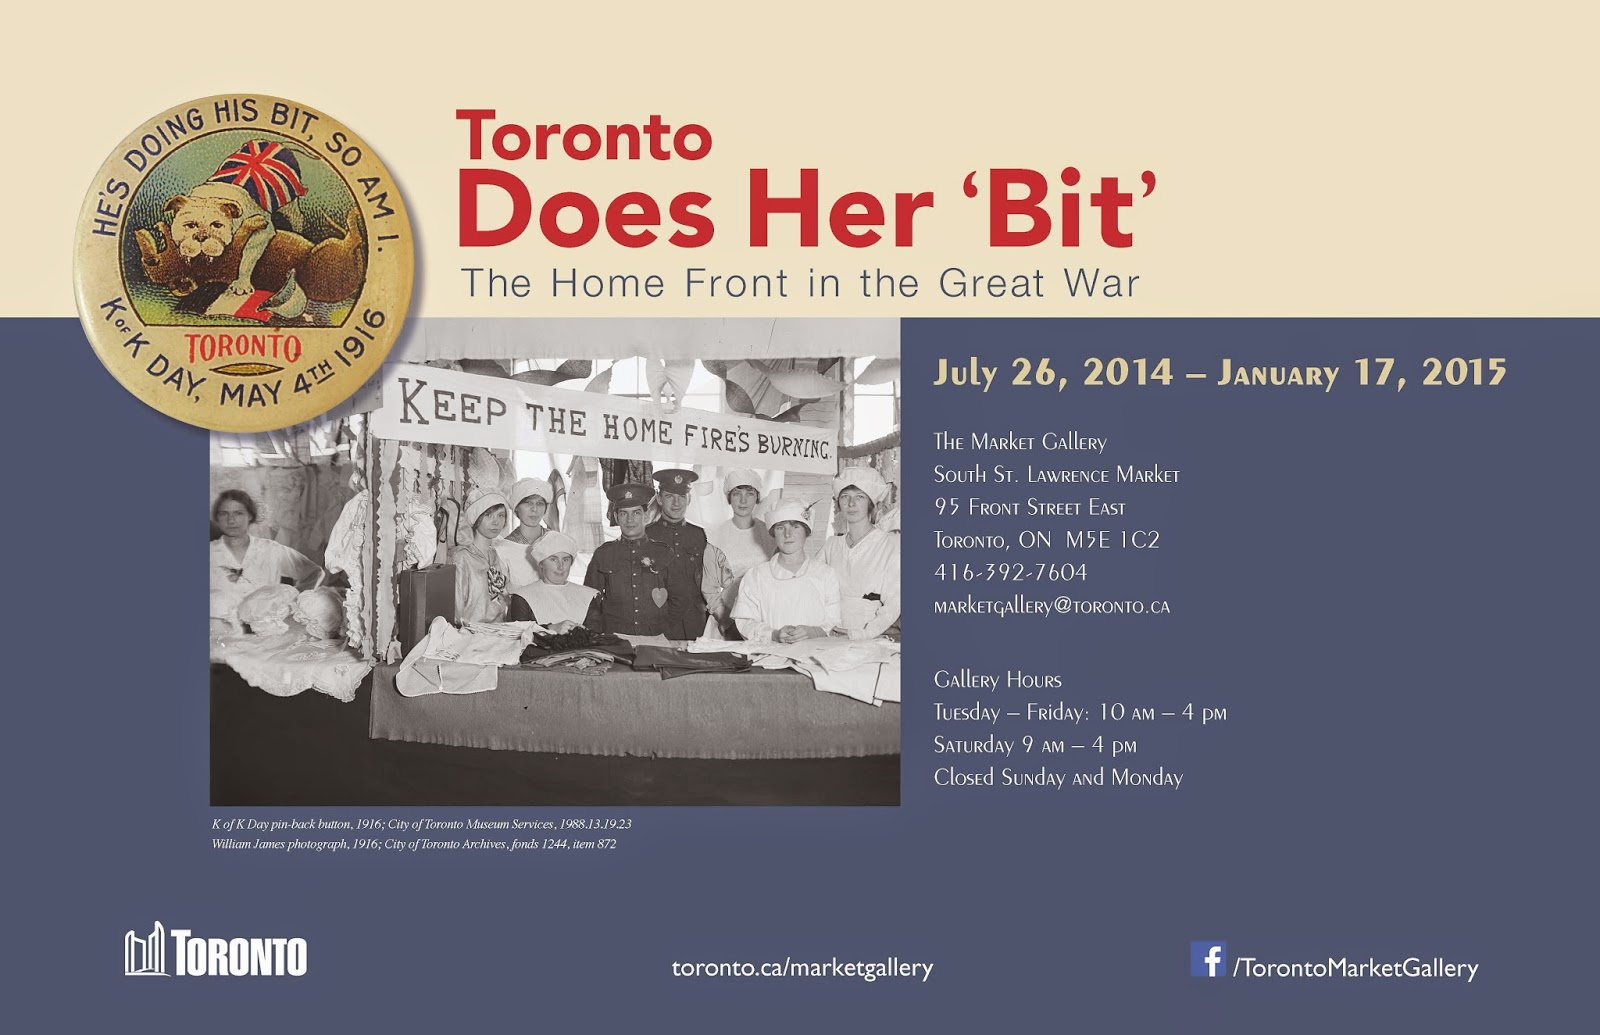 Toronto Does Her 'Bit' Promotional Poster